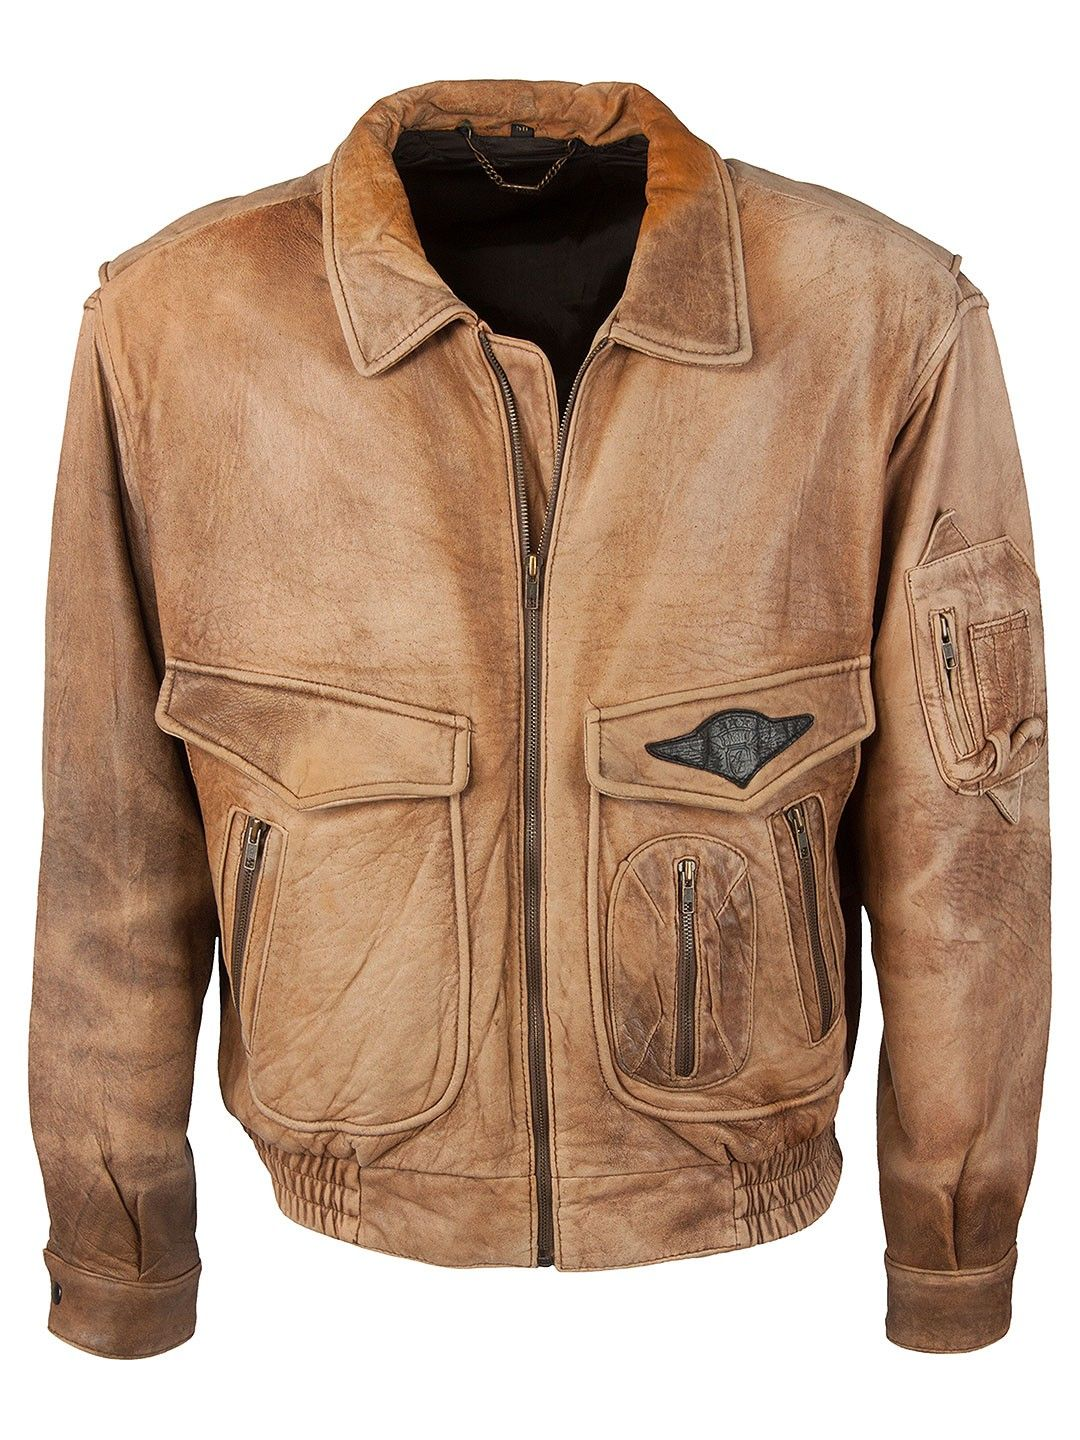 Vintage Peter Lucas Aviator Jacket - XL, Regular Fit, size XL. Colour Light Brown and made from 100% Cowhide Leather with Black Lining and and YKK Front Zip fastening.